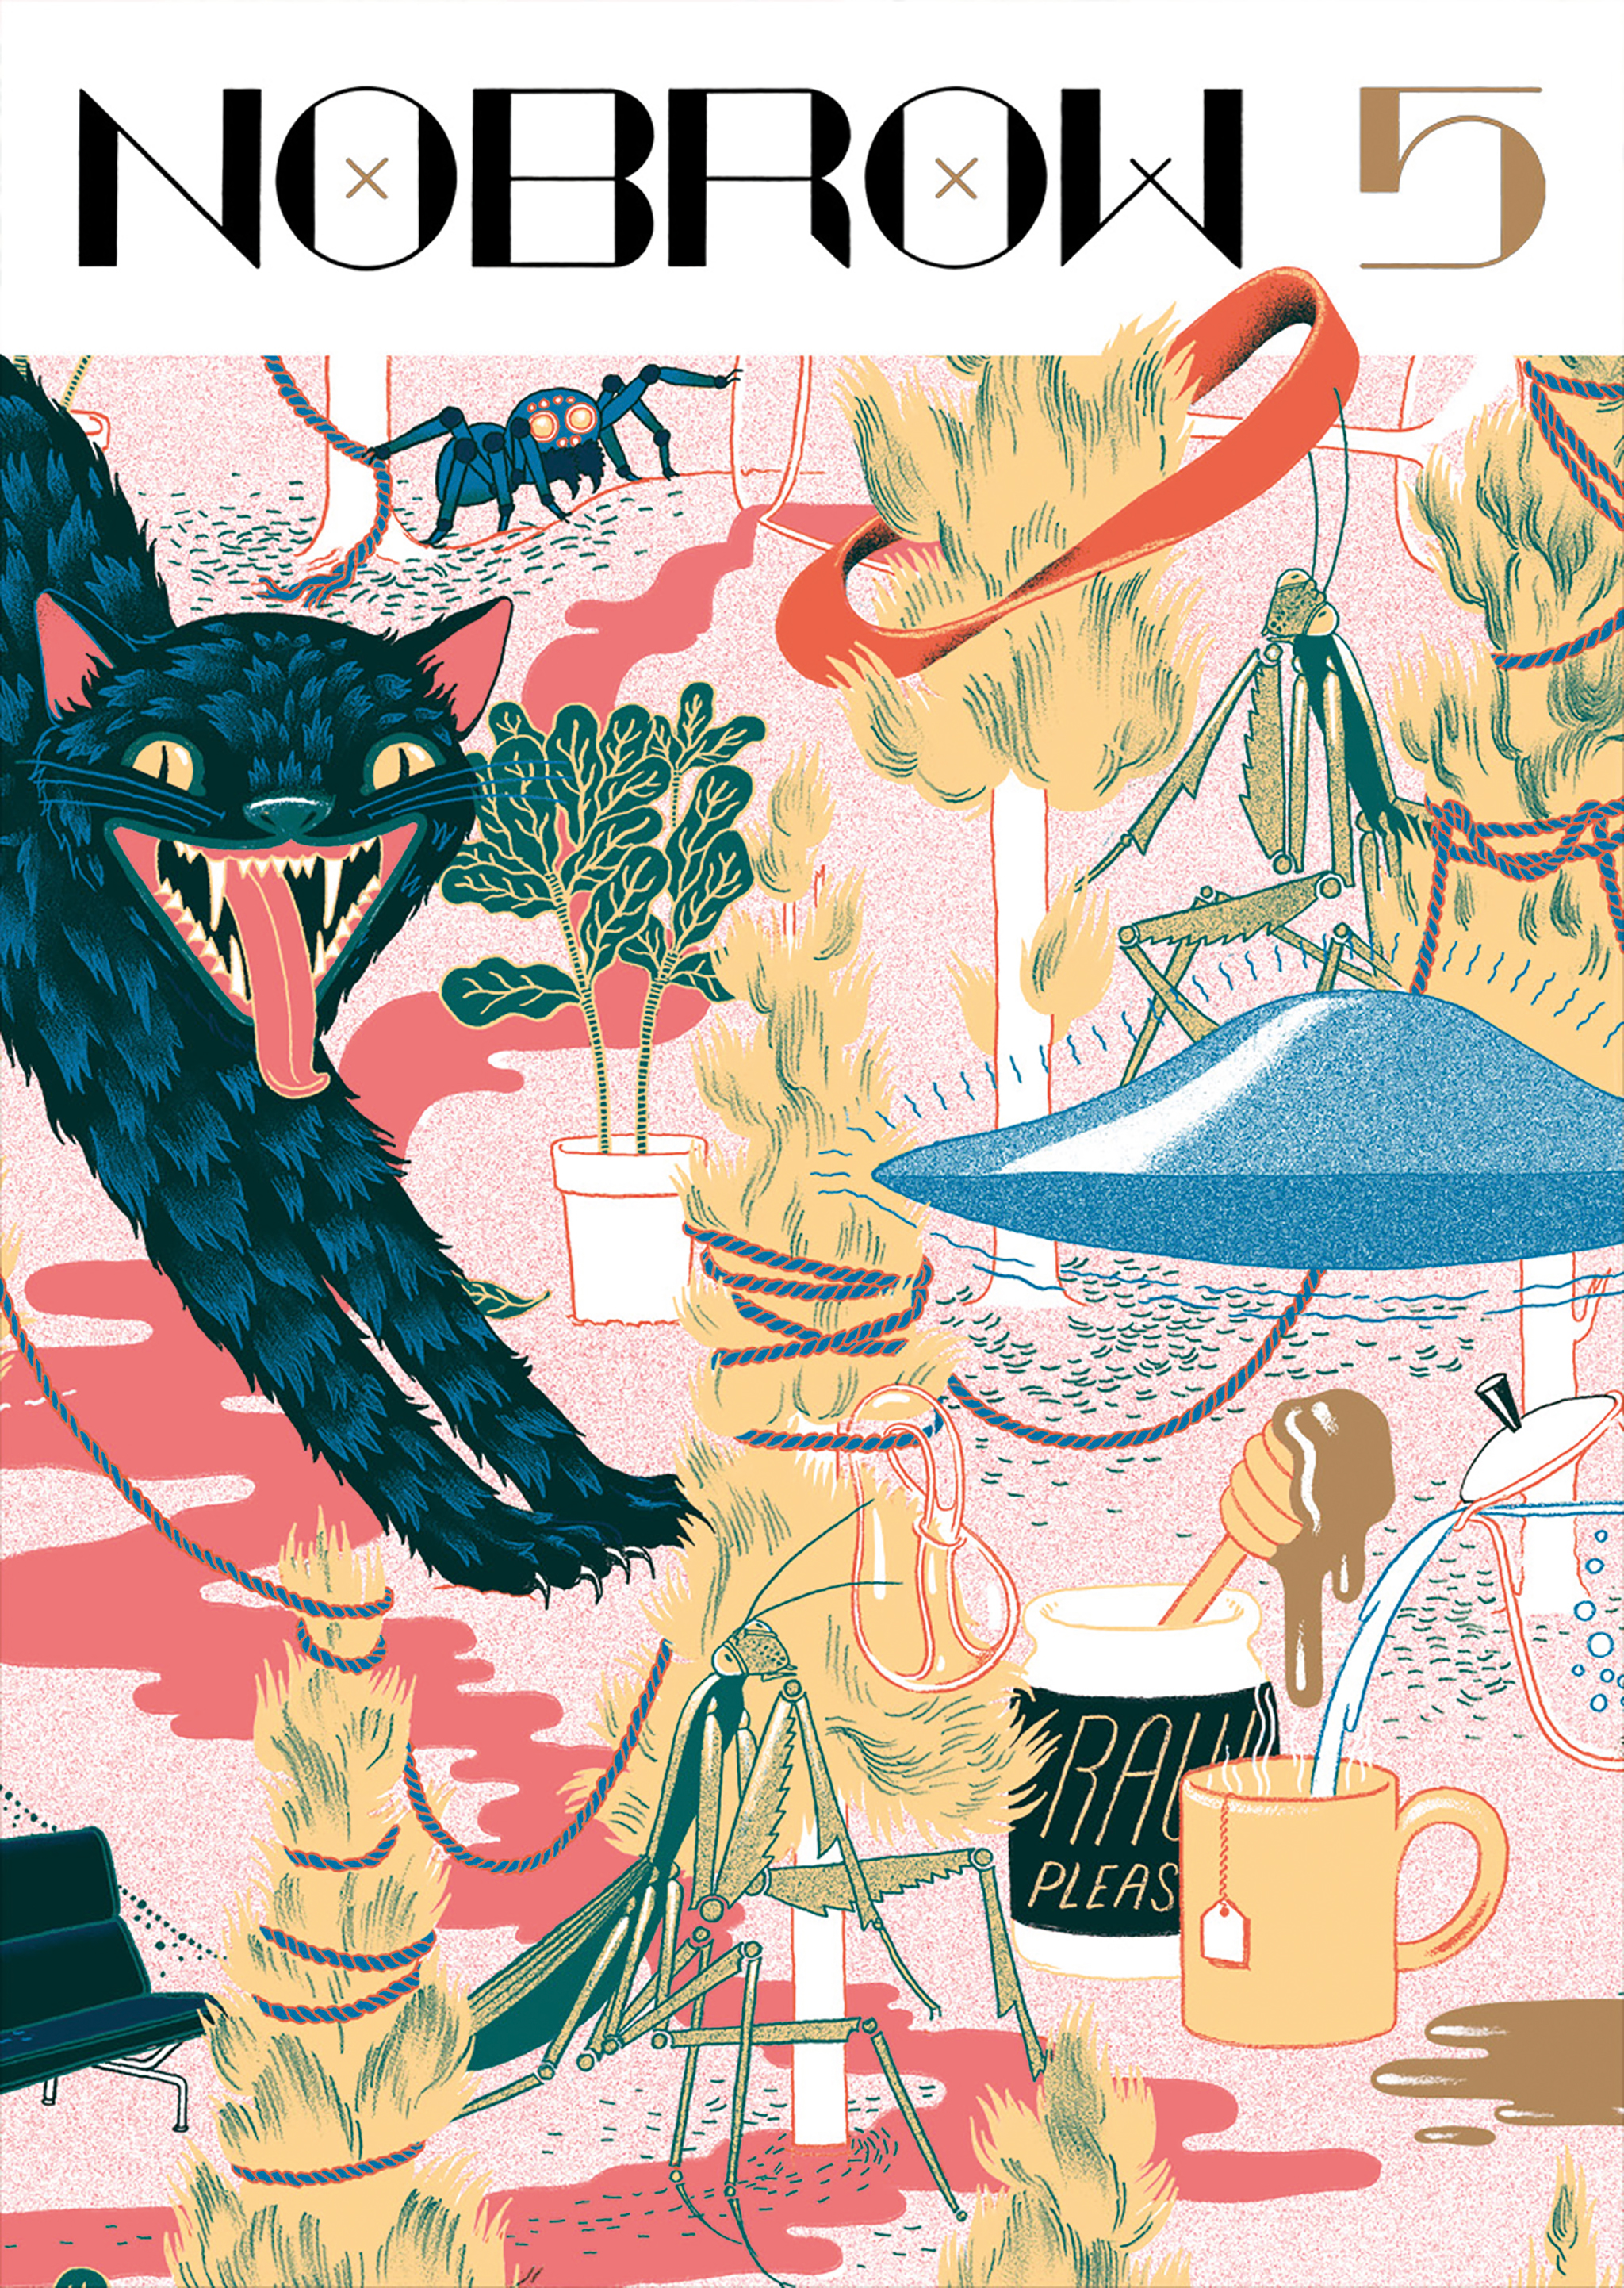 Nobrow 5: A Few of my Favourite Things